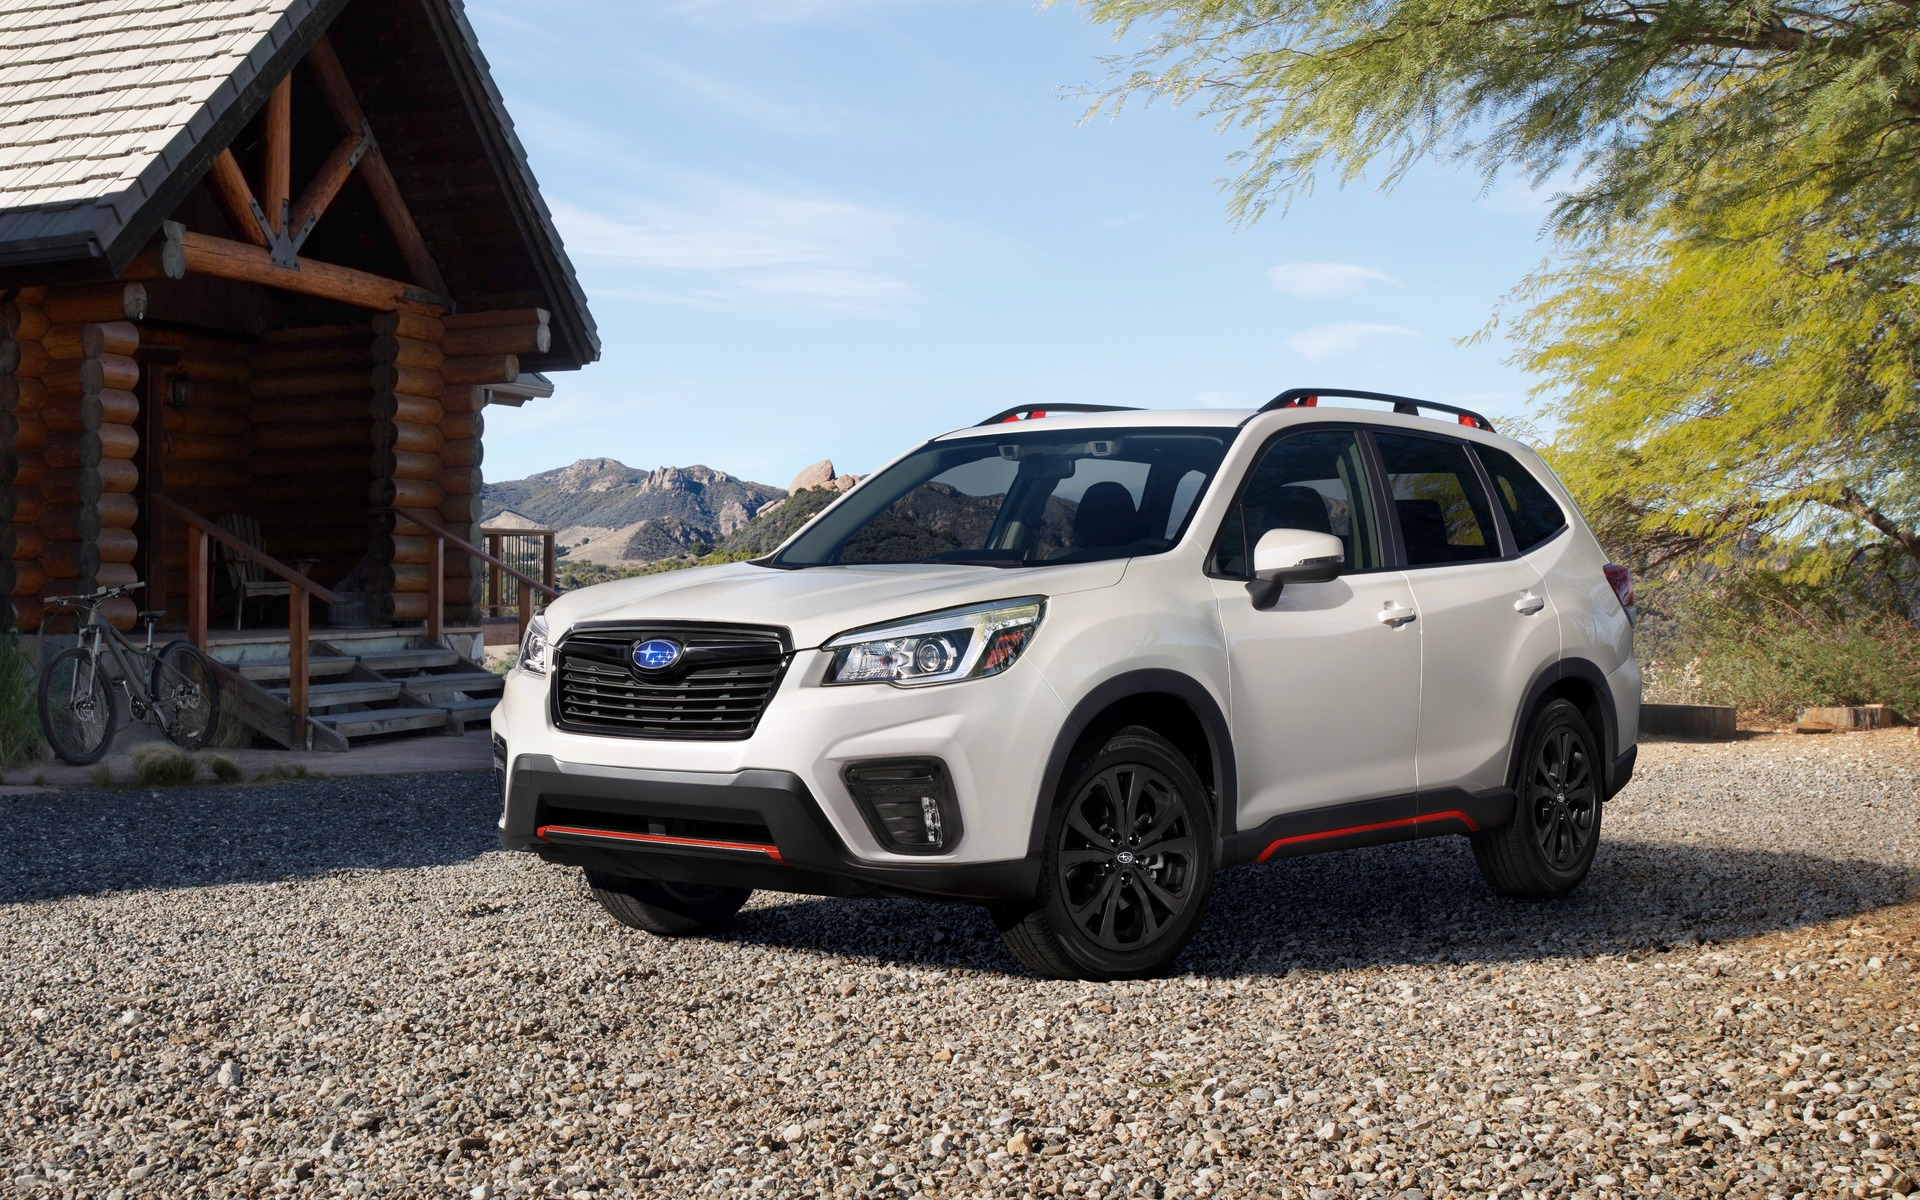 2019 Subaru Forester: Pricing Announced - The Car Guide